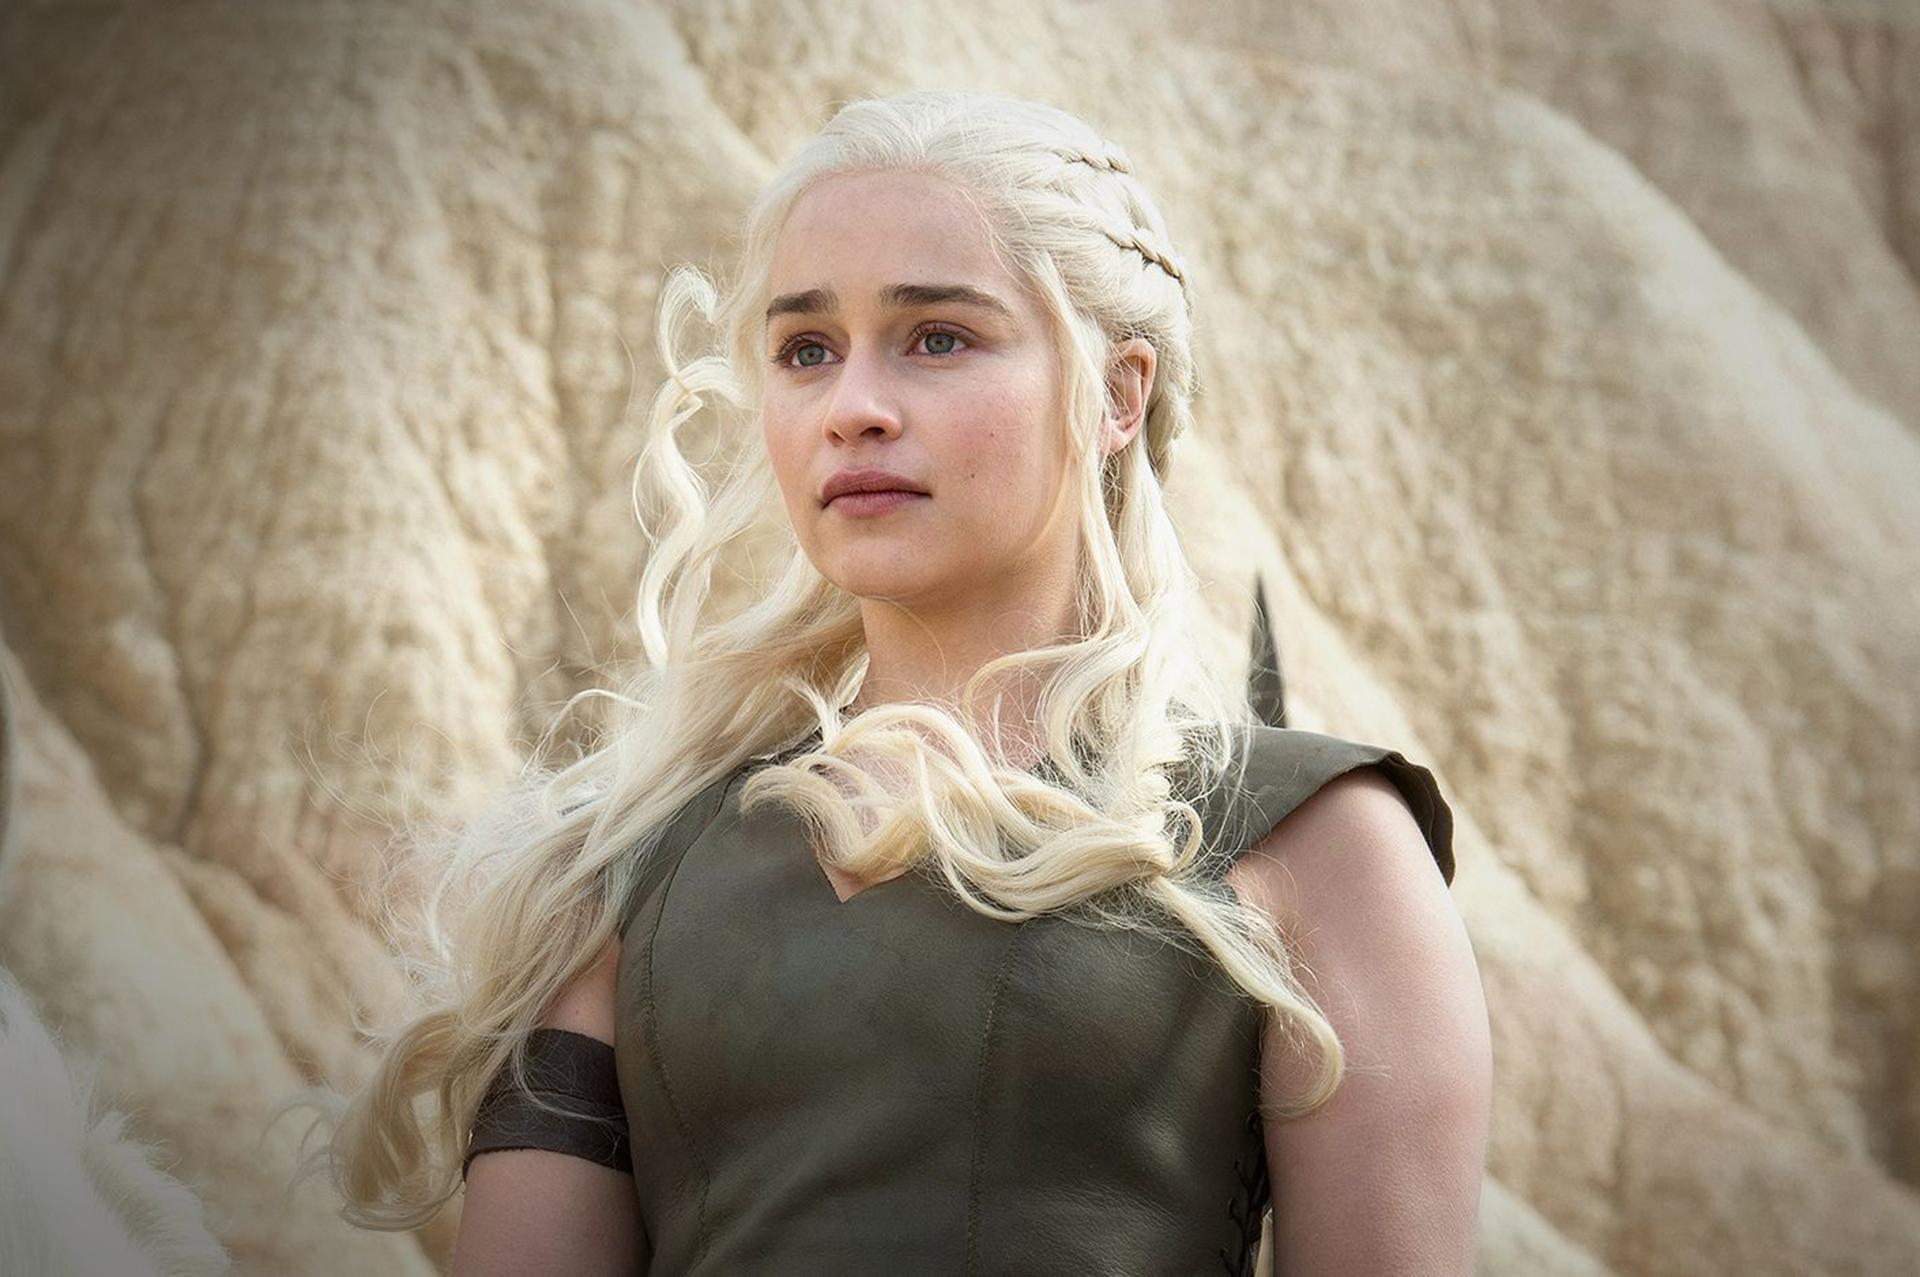 Daenerys Targaryen Game Of Thrones Emilia Clarke Wallpapers - Wallpaper Cave